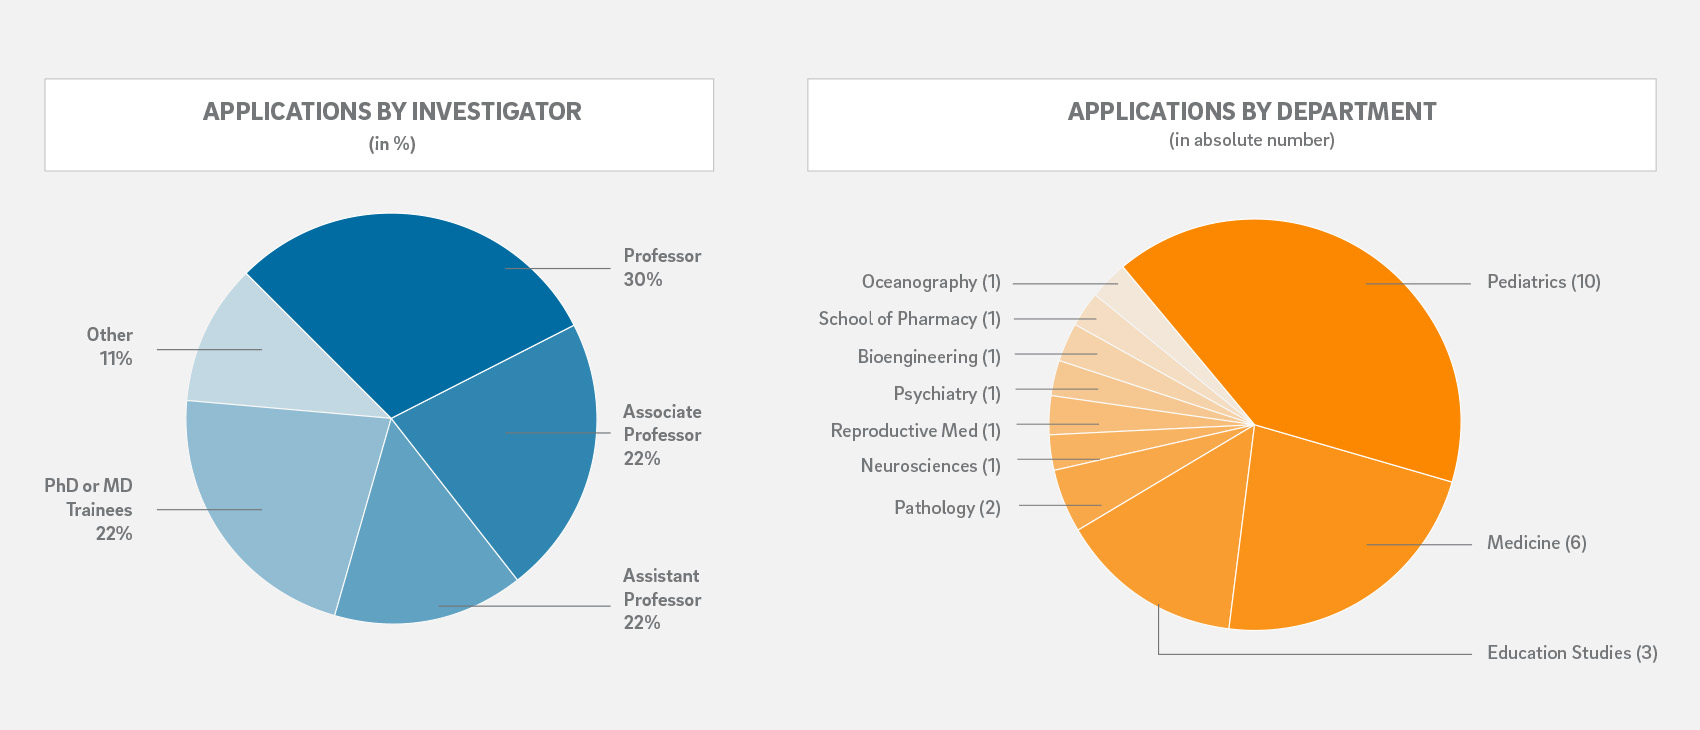 pie charts for percentagese of applications by investigator level and by department